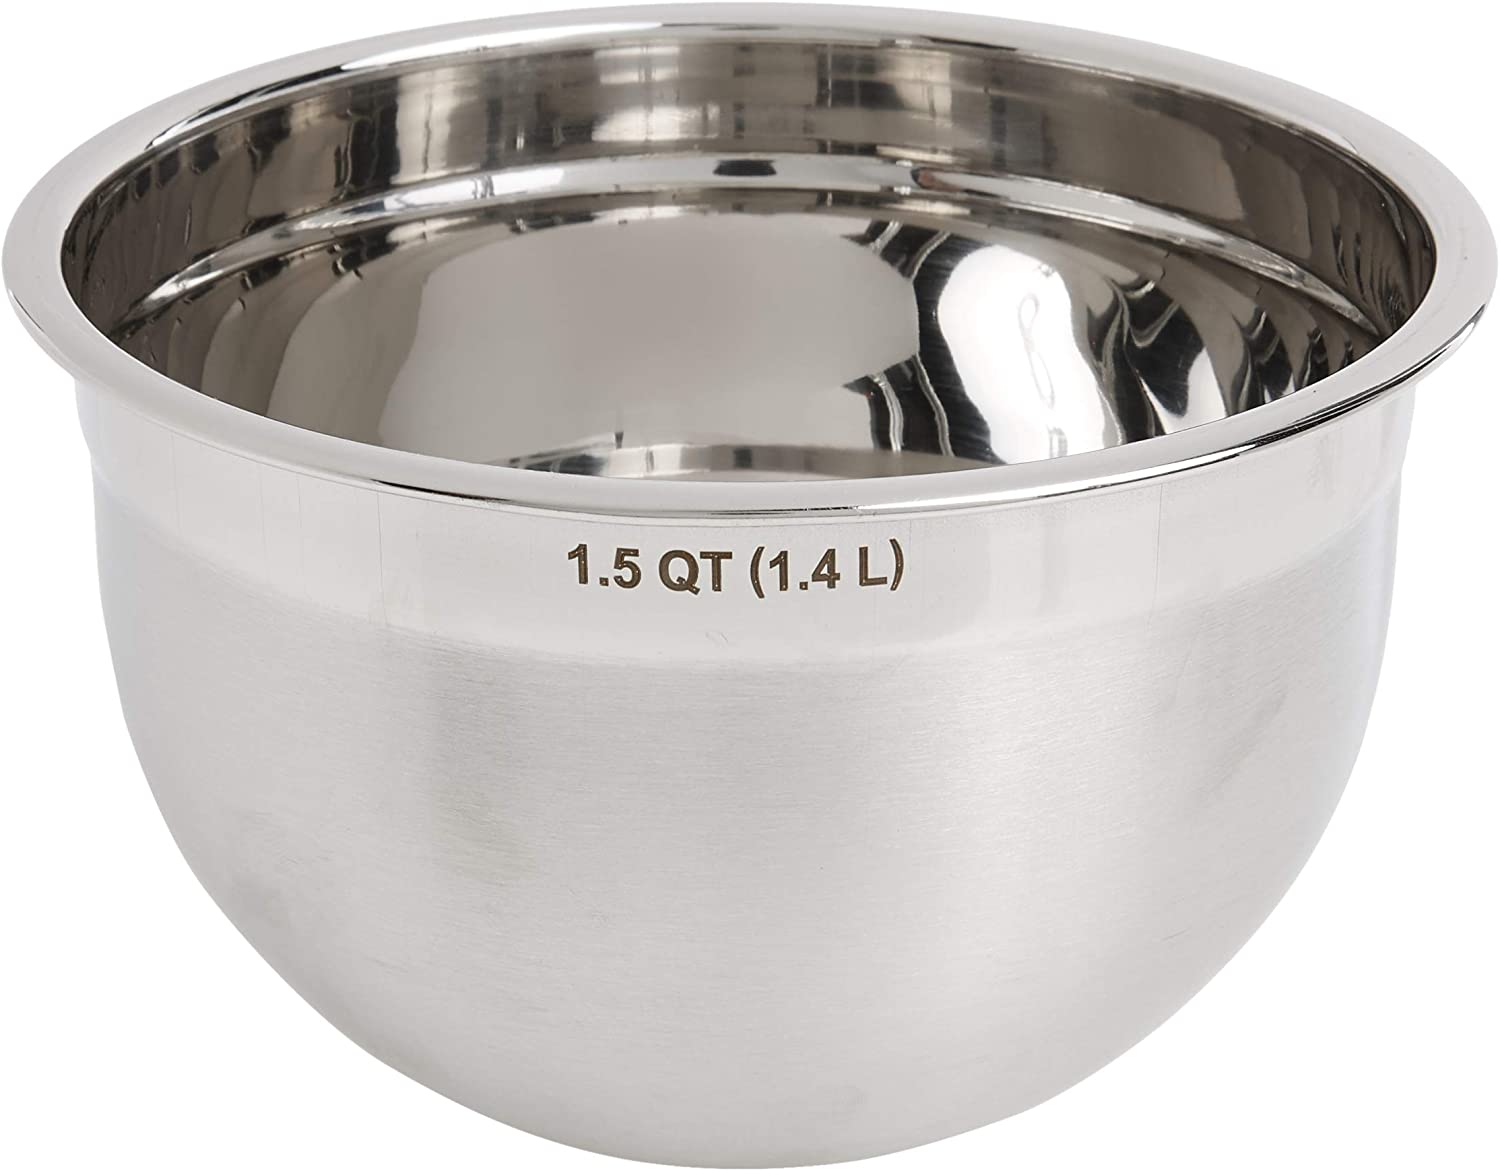 Stainless Steel DishBowl 6 inch ~ Small Double Boiler Pan ~ 1 QT Double Boiler Bowl